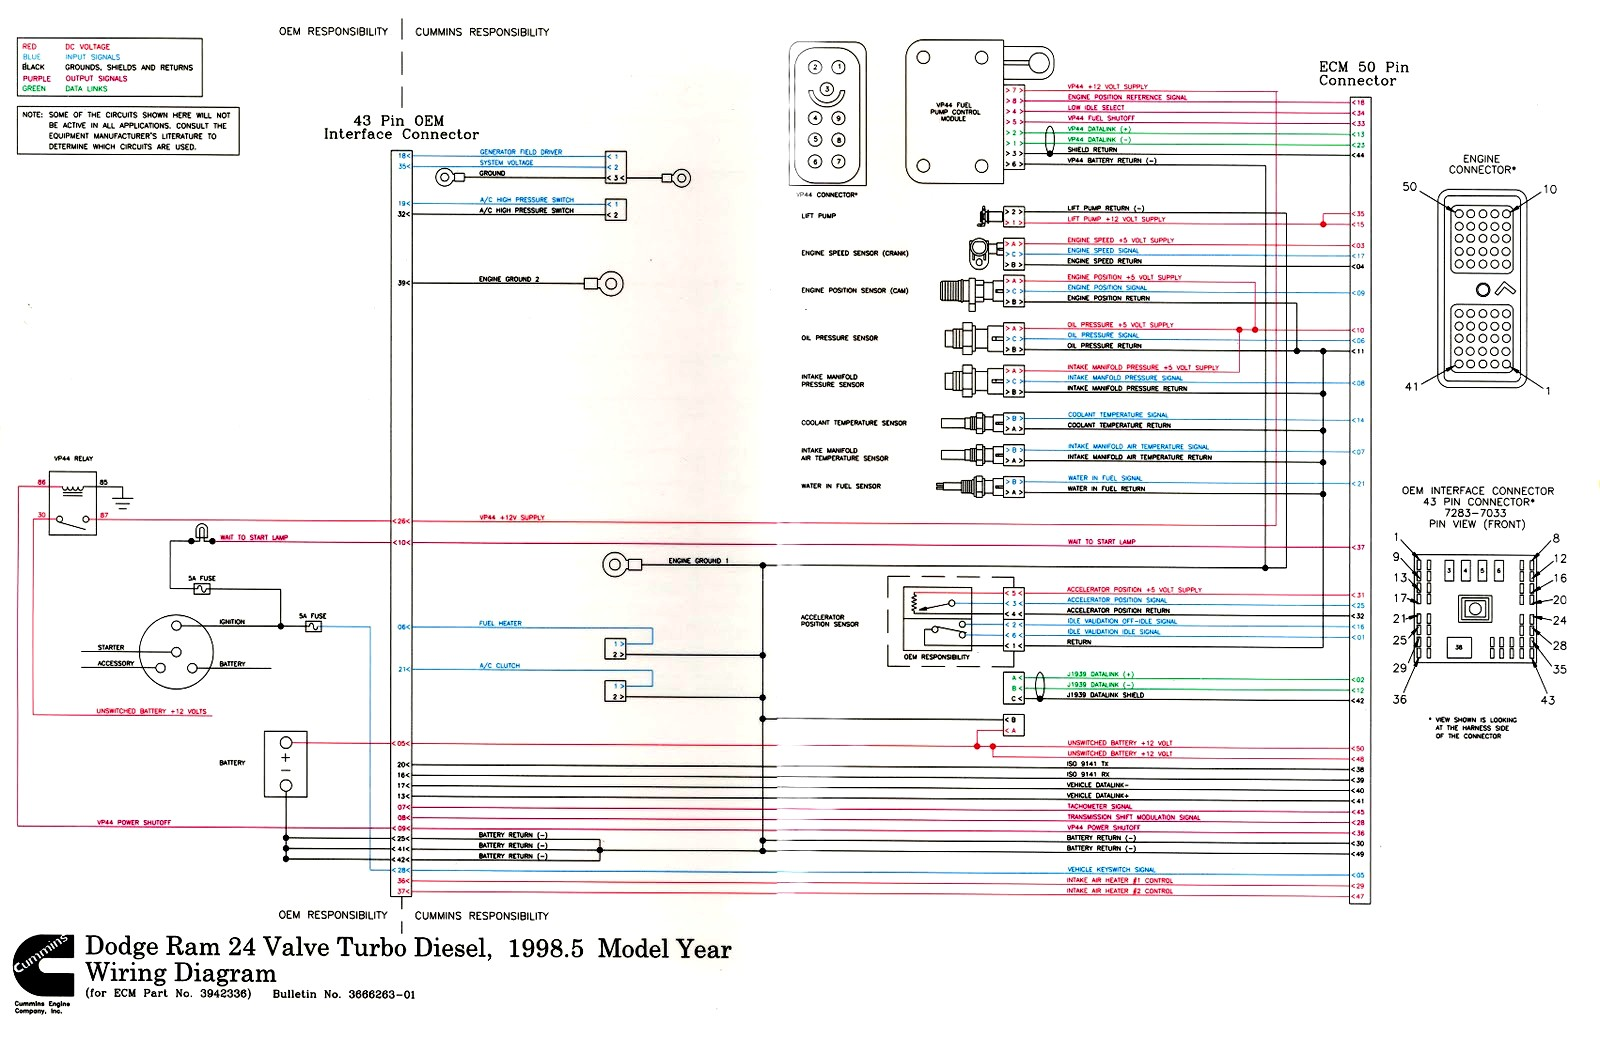 small resolution of m11 wiring diagram wiring diagram schema m11 celect wiring diagram m11 wiring diagram